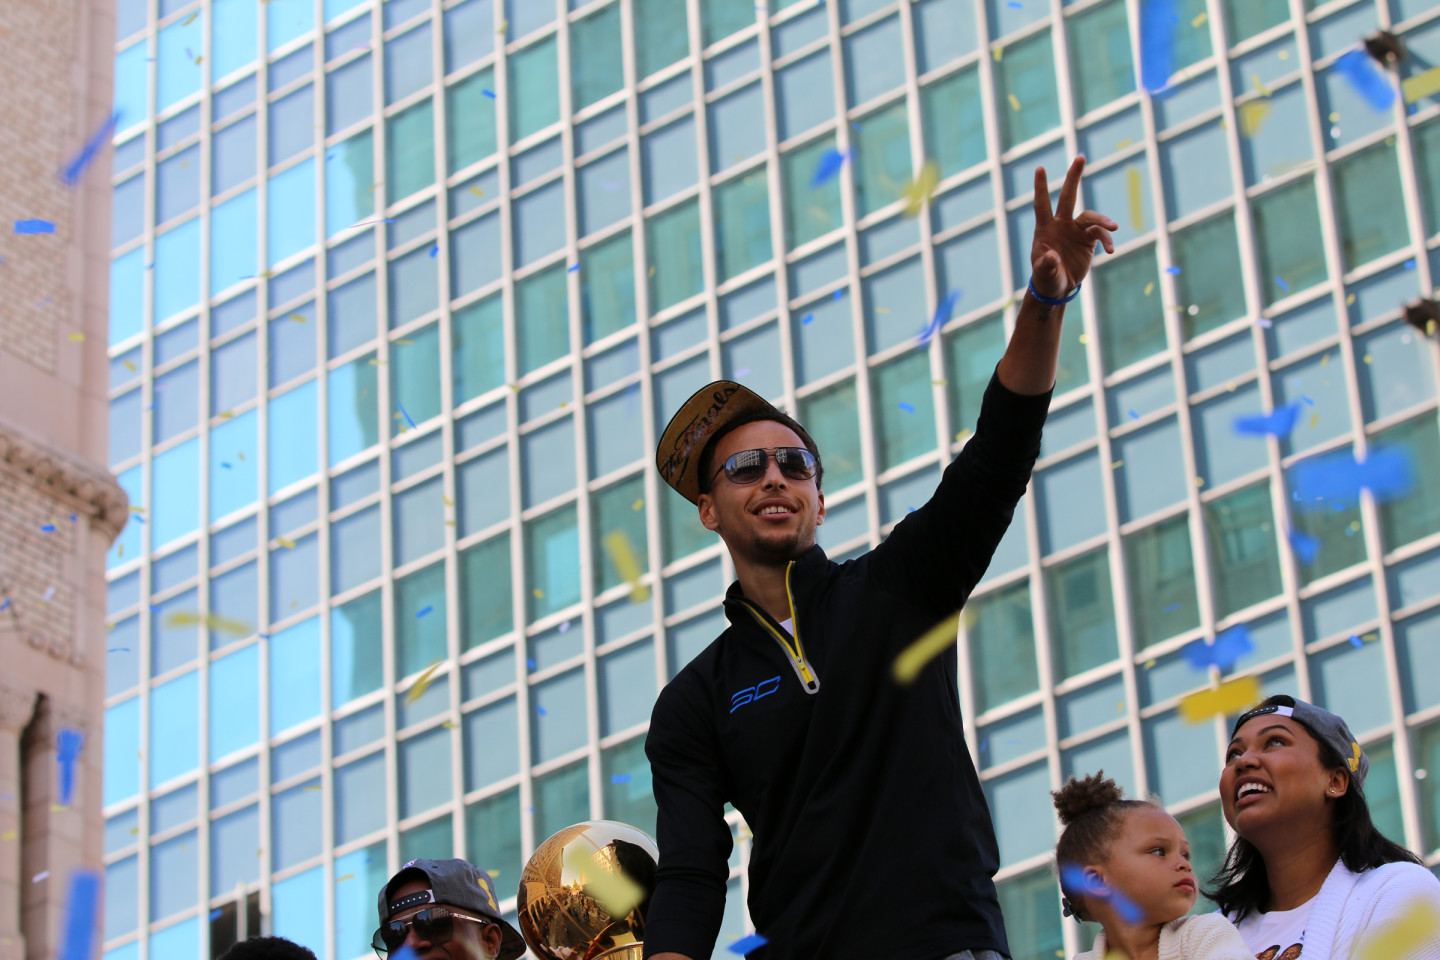 Stephen Curry celebrates during the Warriors championship parade Friday. (Adam Grossberg/KQED)